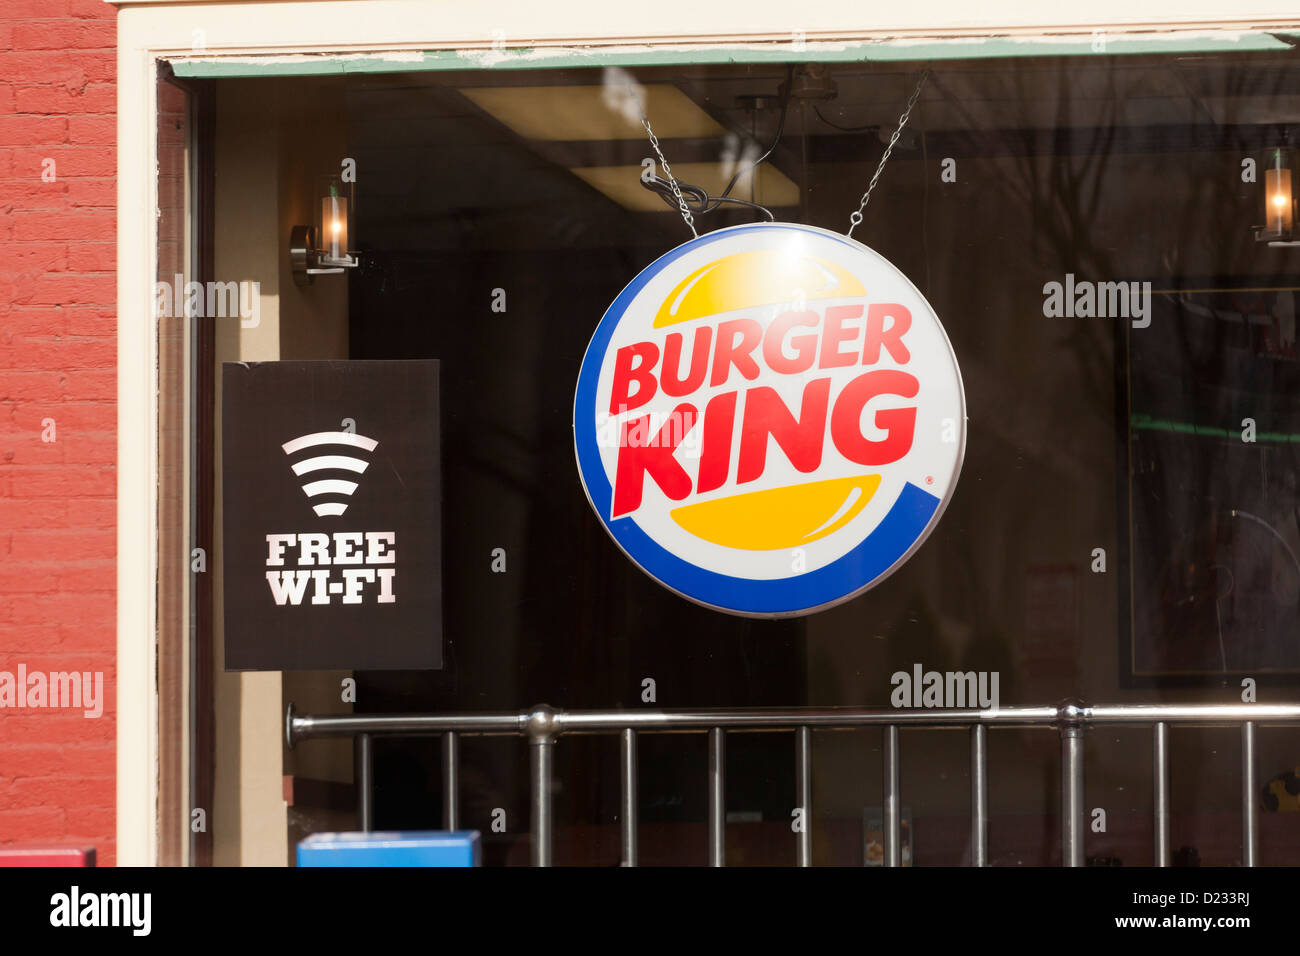 Restaurant Burger King fenêtre avec service WiFi gratuit sign Photo Stock